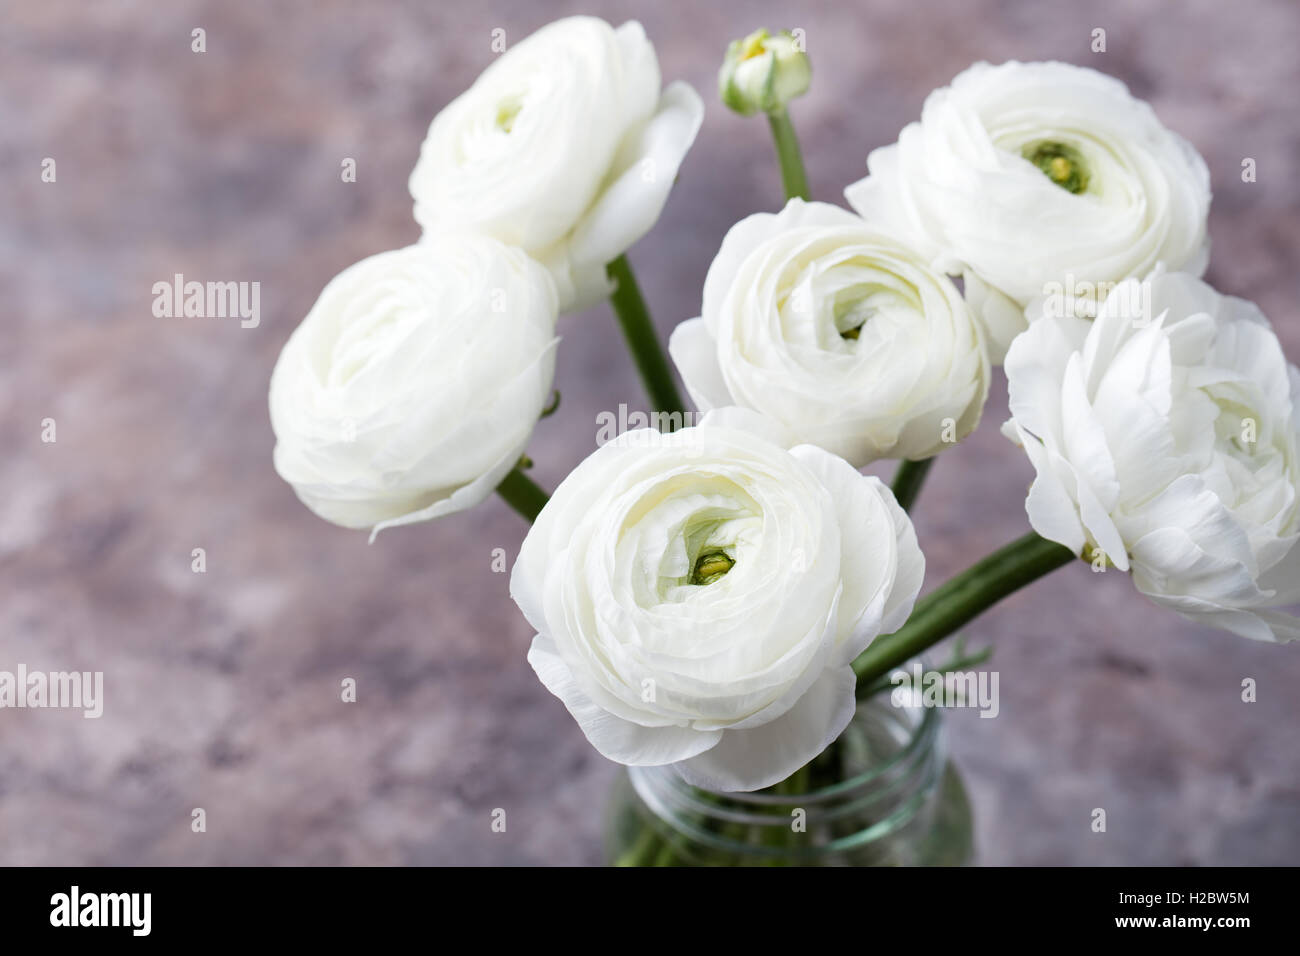 White ranunculus flowers in a glass vase grey background copy space white ranunculus flowers in a glass vase grey background copy space mightylinksfo